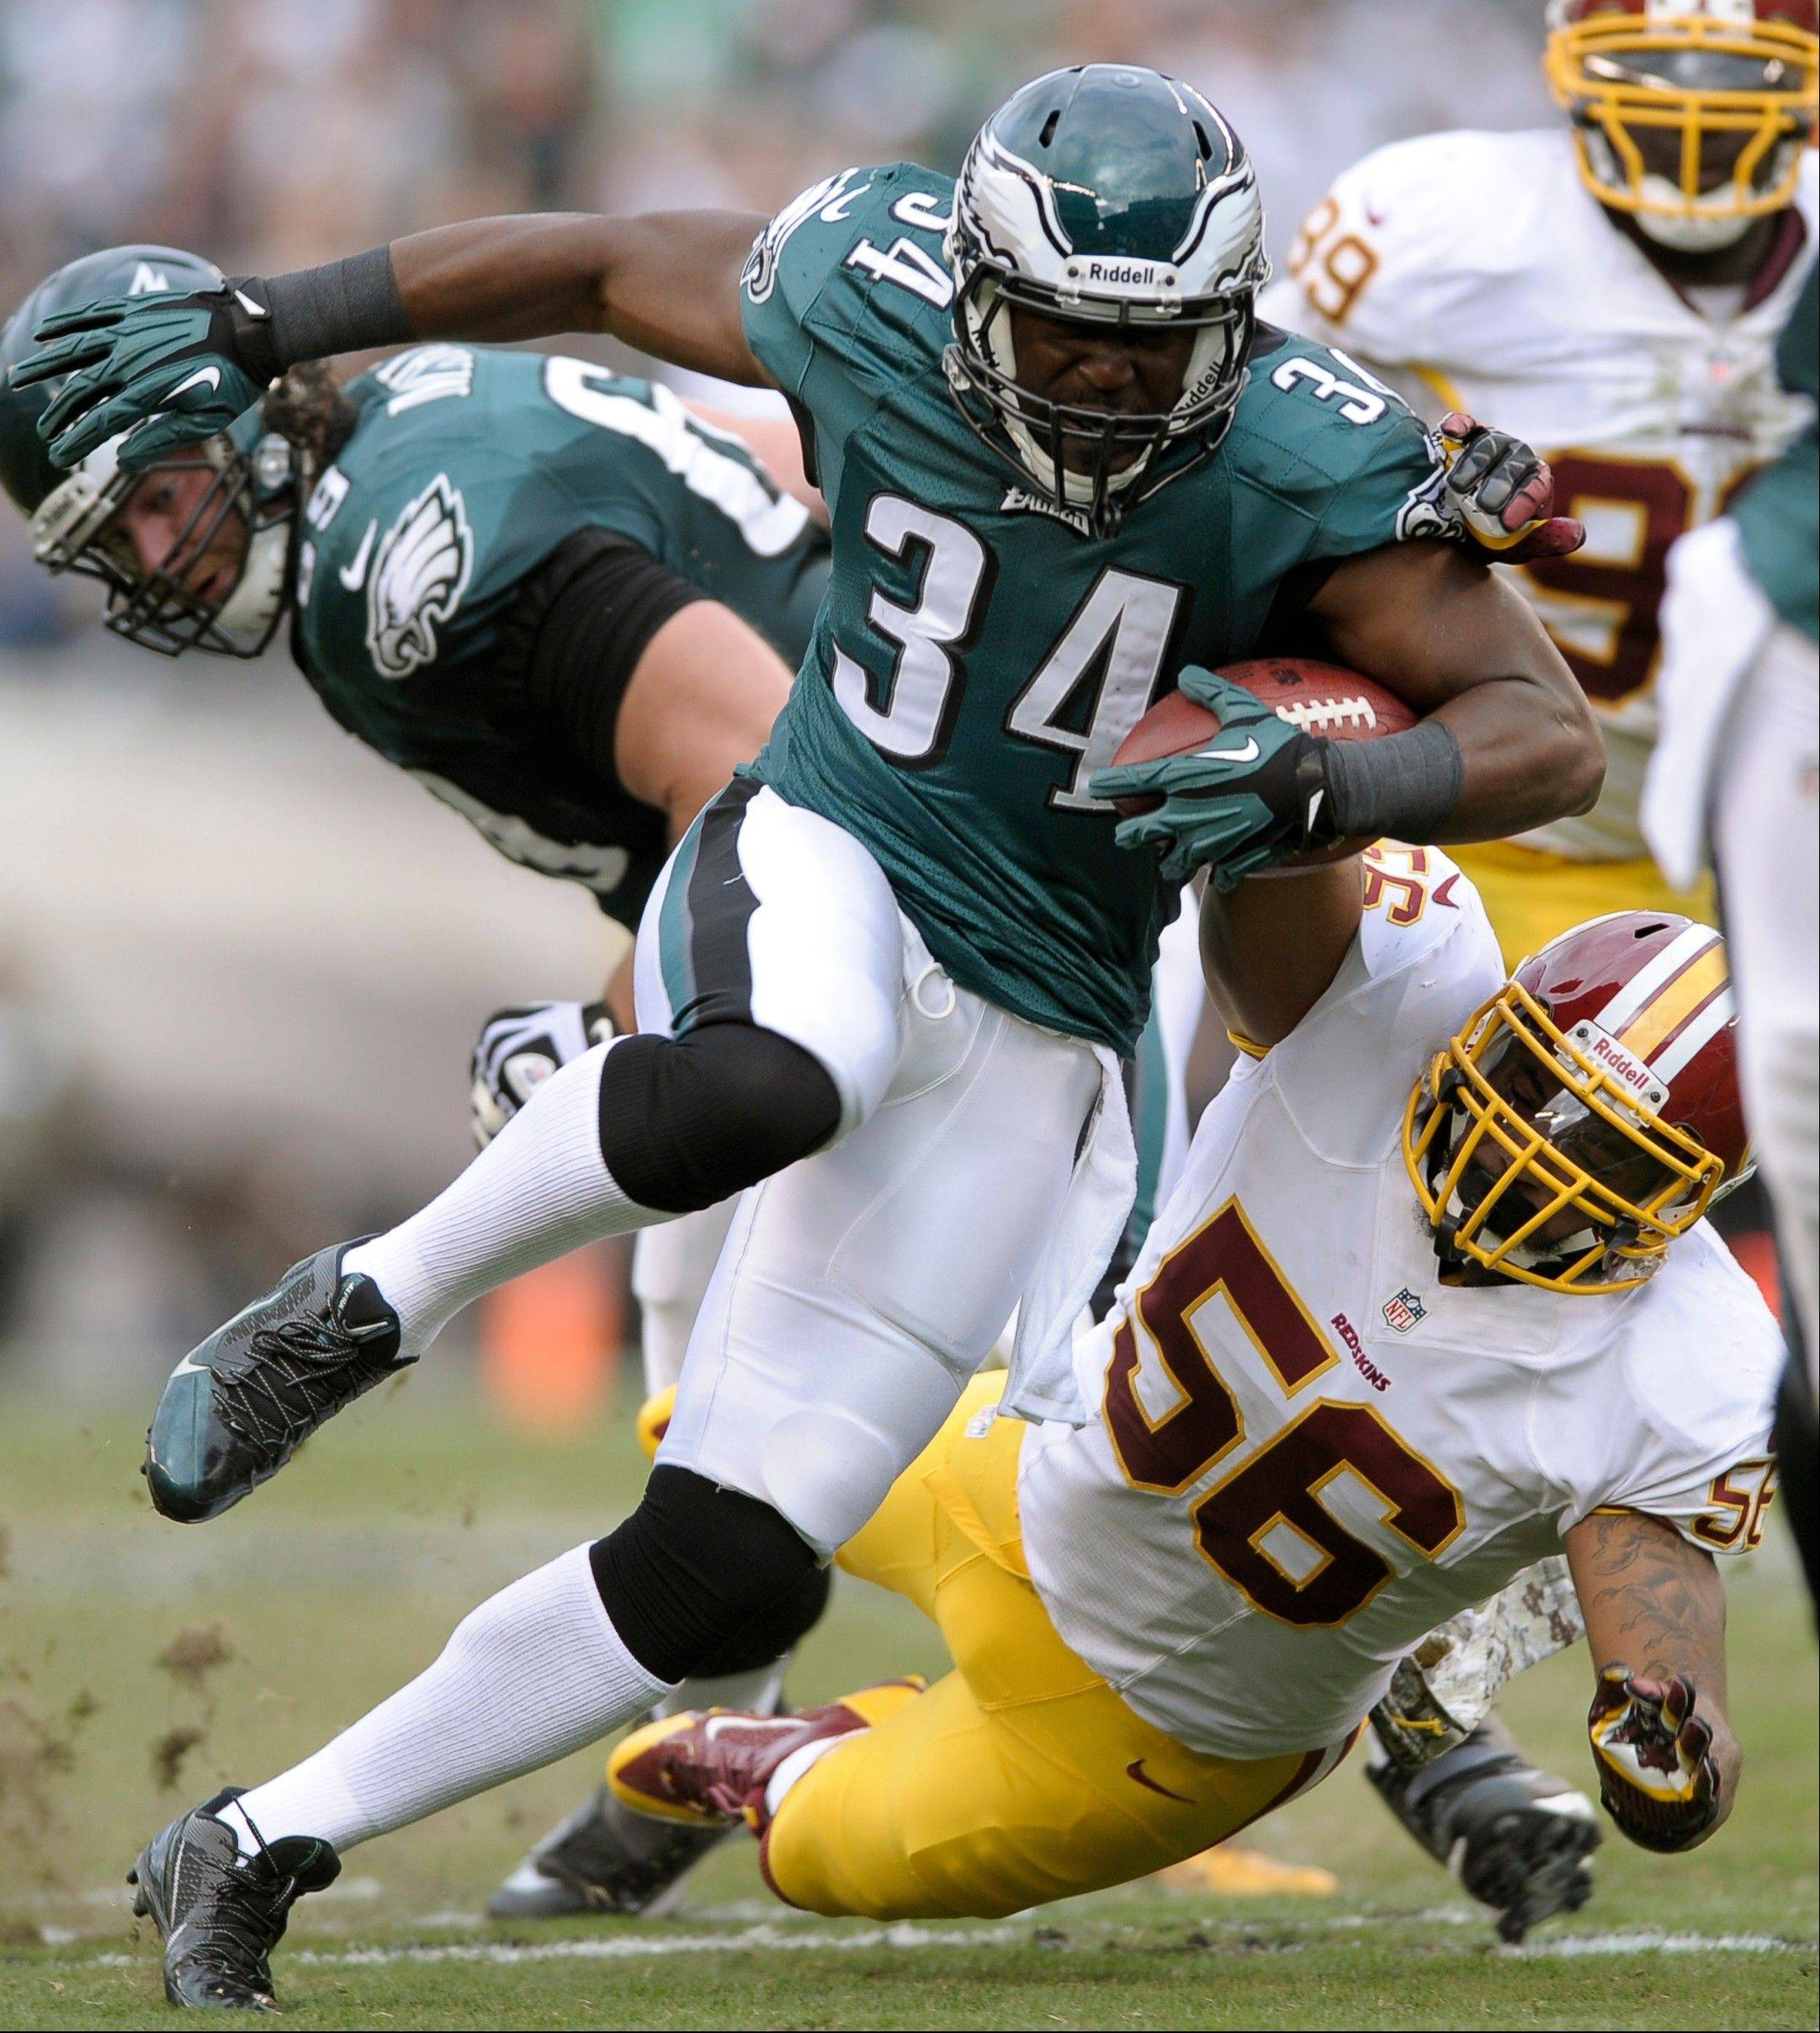 Philadelphia Eagles running back Bryce Brown (34) escapes the grasp of Washington linebacker Perry Riley during the first half of an NFL football game in Philadelphia, Sunday, Nov. 17, 2013.